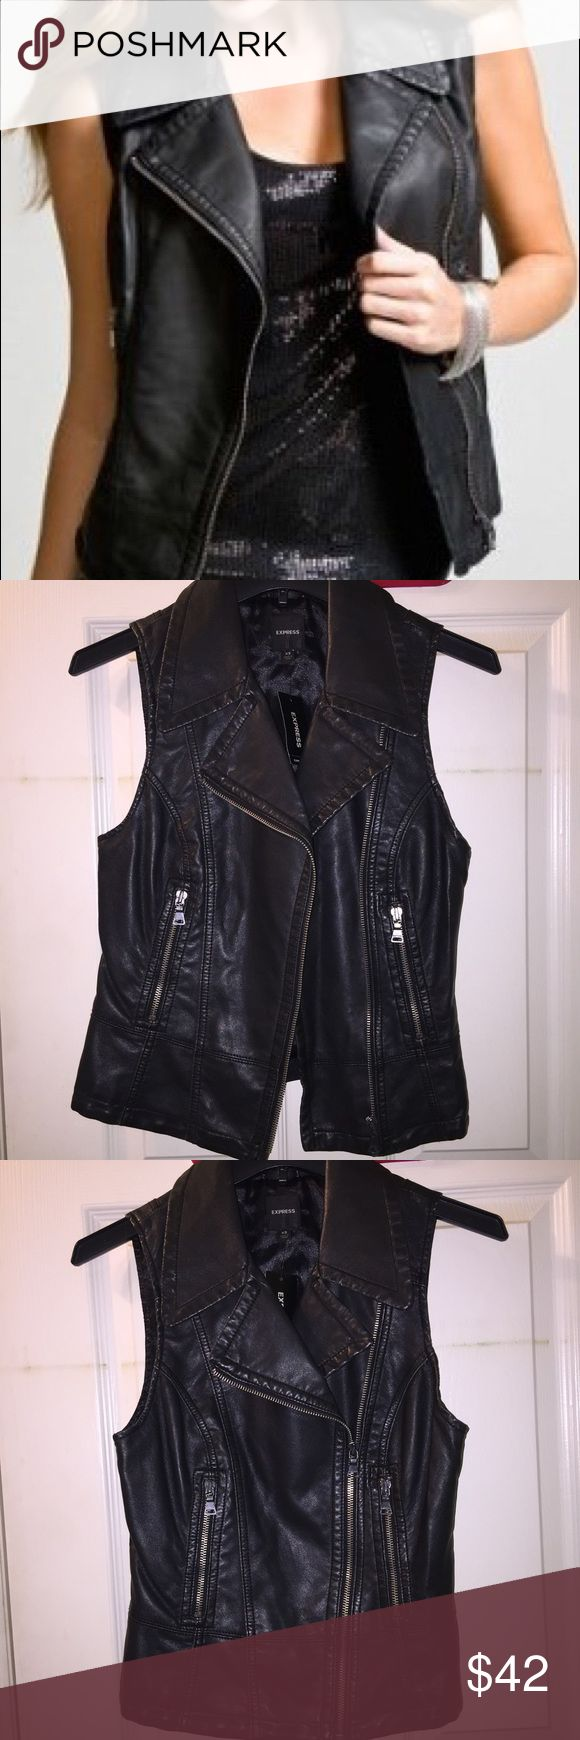 "NWT Express Moto Vest 🌼Black faux leather                                                                                   🌼Silver zippers                                                                        🌼Brand new w/ tags, Never worn                                     *Please ask any questions you may have before purchasing* 10% OFF 2+ ITEMS - USE THE ""ADD TO BUNDLE"" FEATURE !!! Express Jackets & Coats Vests"